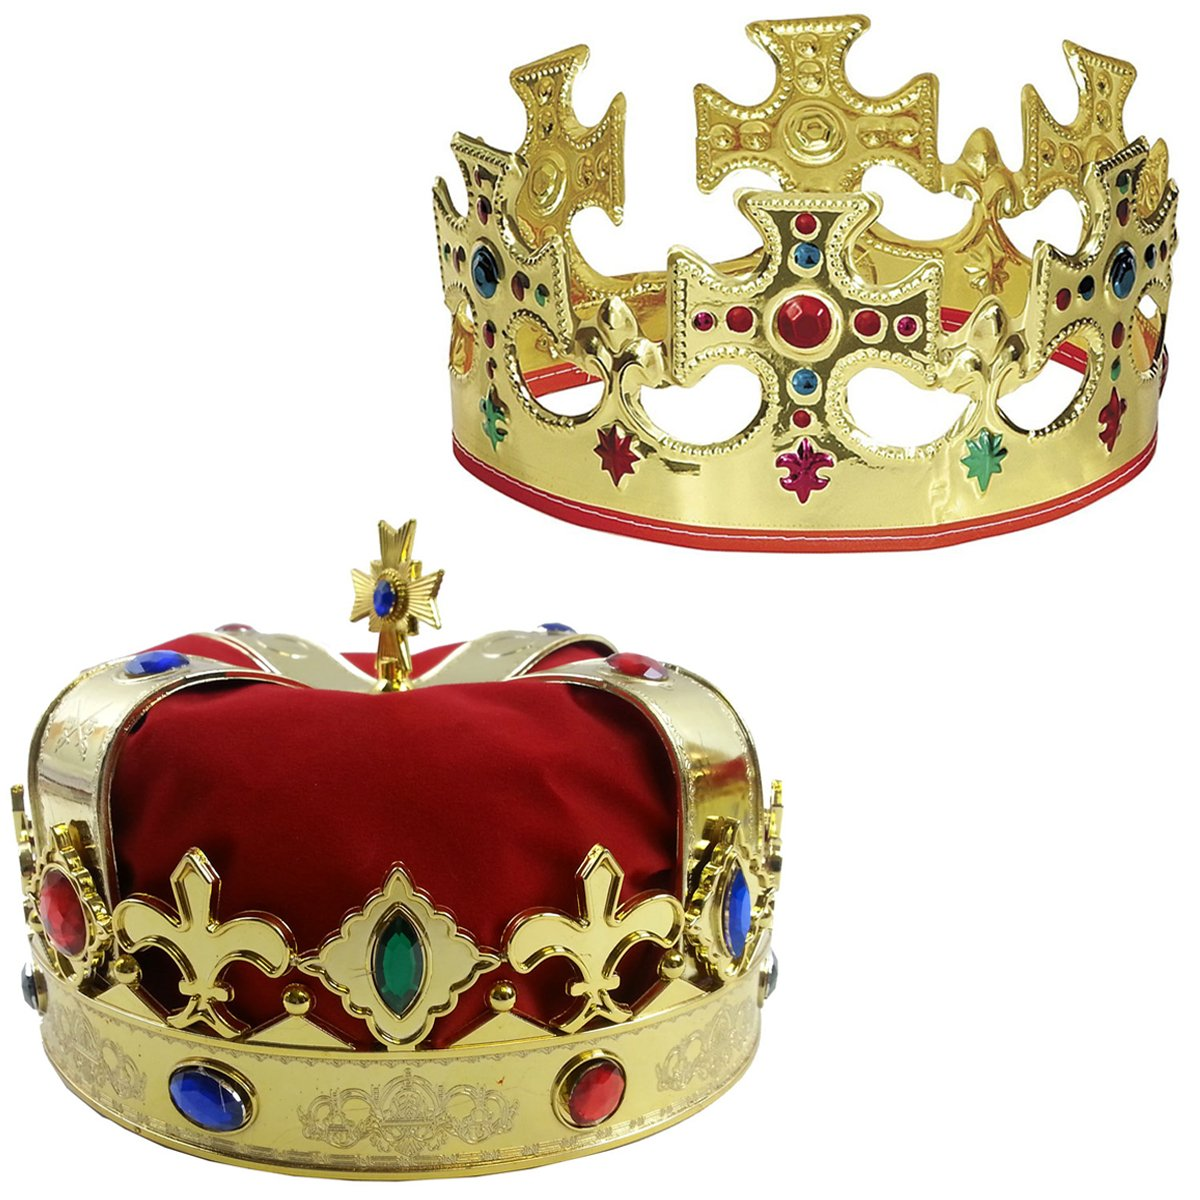 Funny Party Hats Adjustable Gold Crown and a Red Jeweld Crown ab474-am345